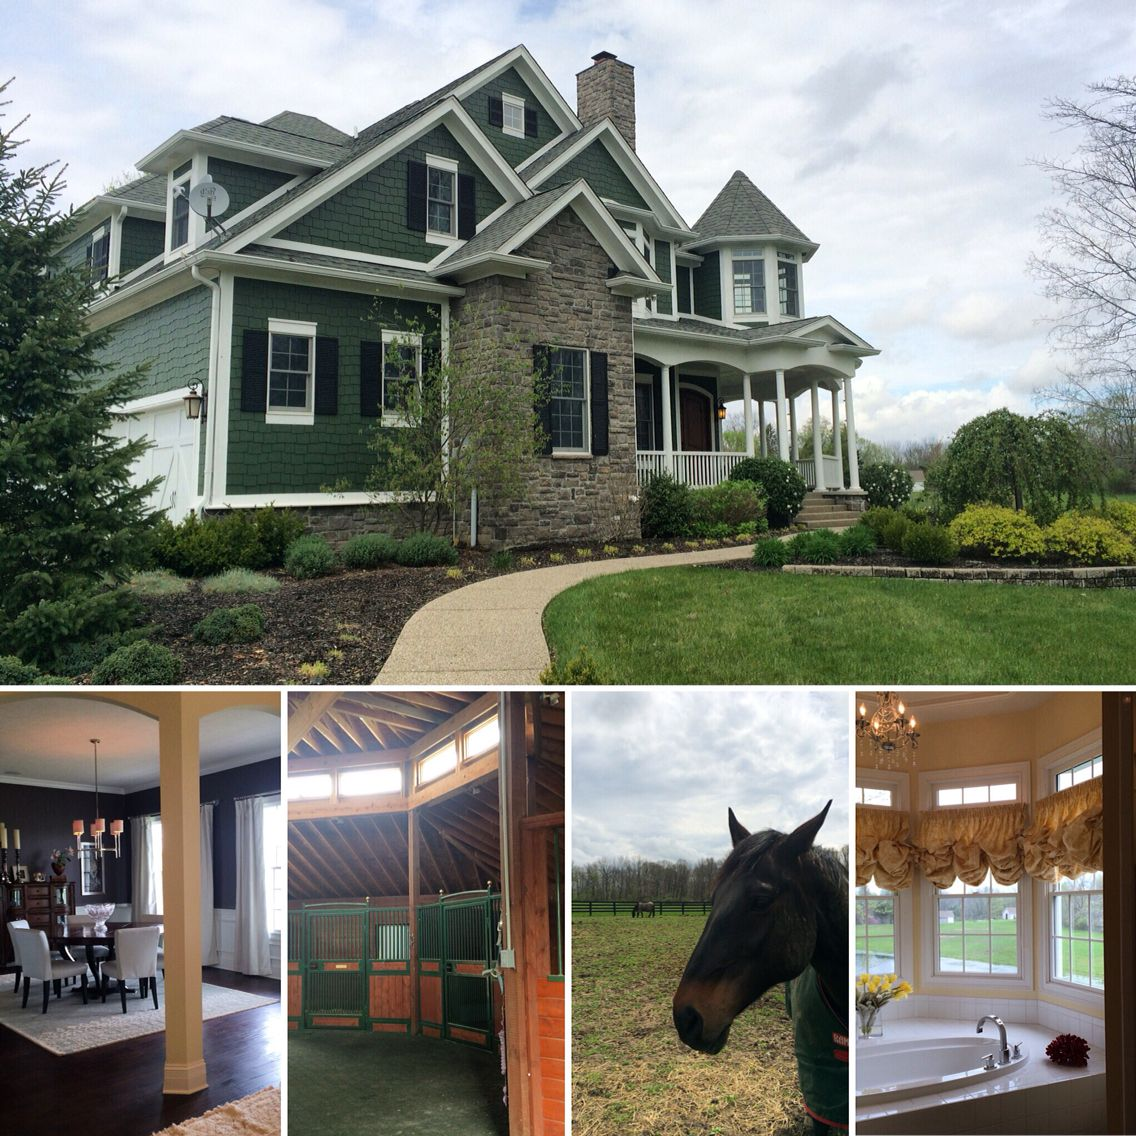 Beautiful Home And Horse Farm In Zionsville Happy To Set Up A Private Showing If You Are Interested In This Home 317 Beautiful Homes House Styles Mansions